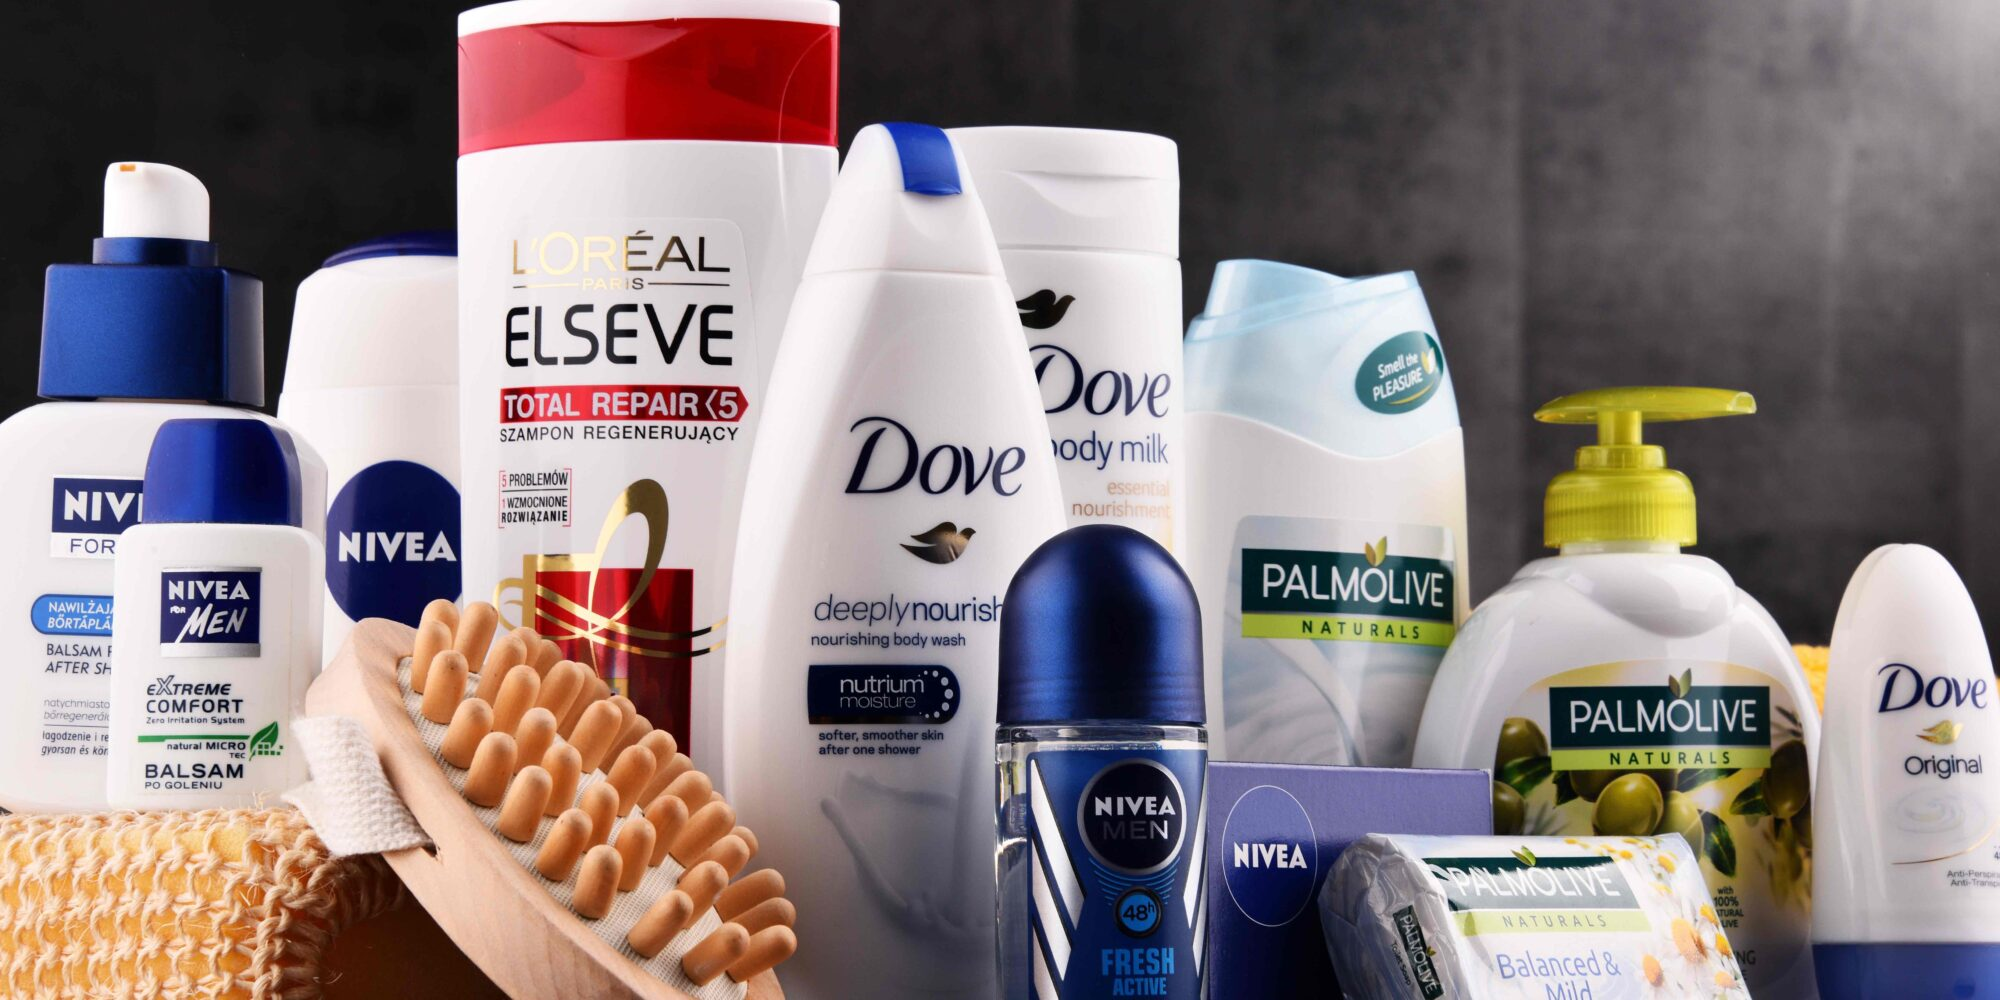 """Unilever Is Excising The Word """"Normal"""" From Beauty Packaging. What Other Words Should Be Excised From Beauty?"""